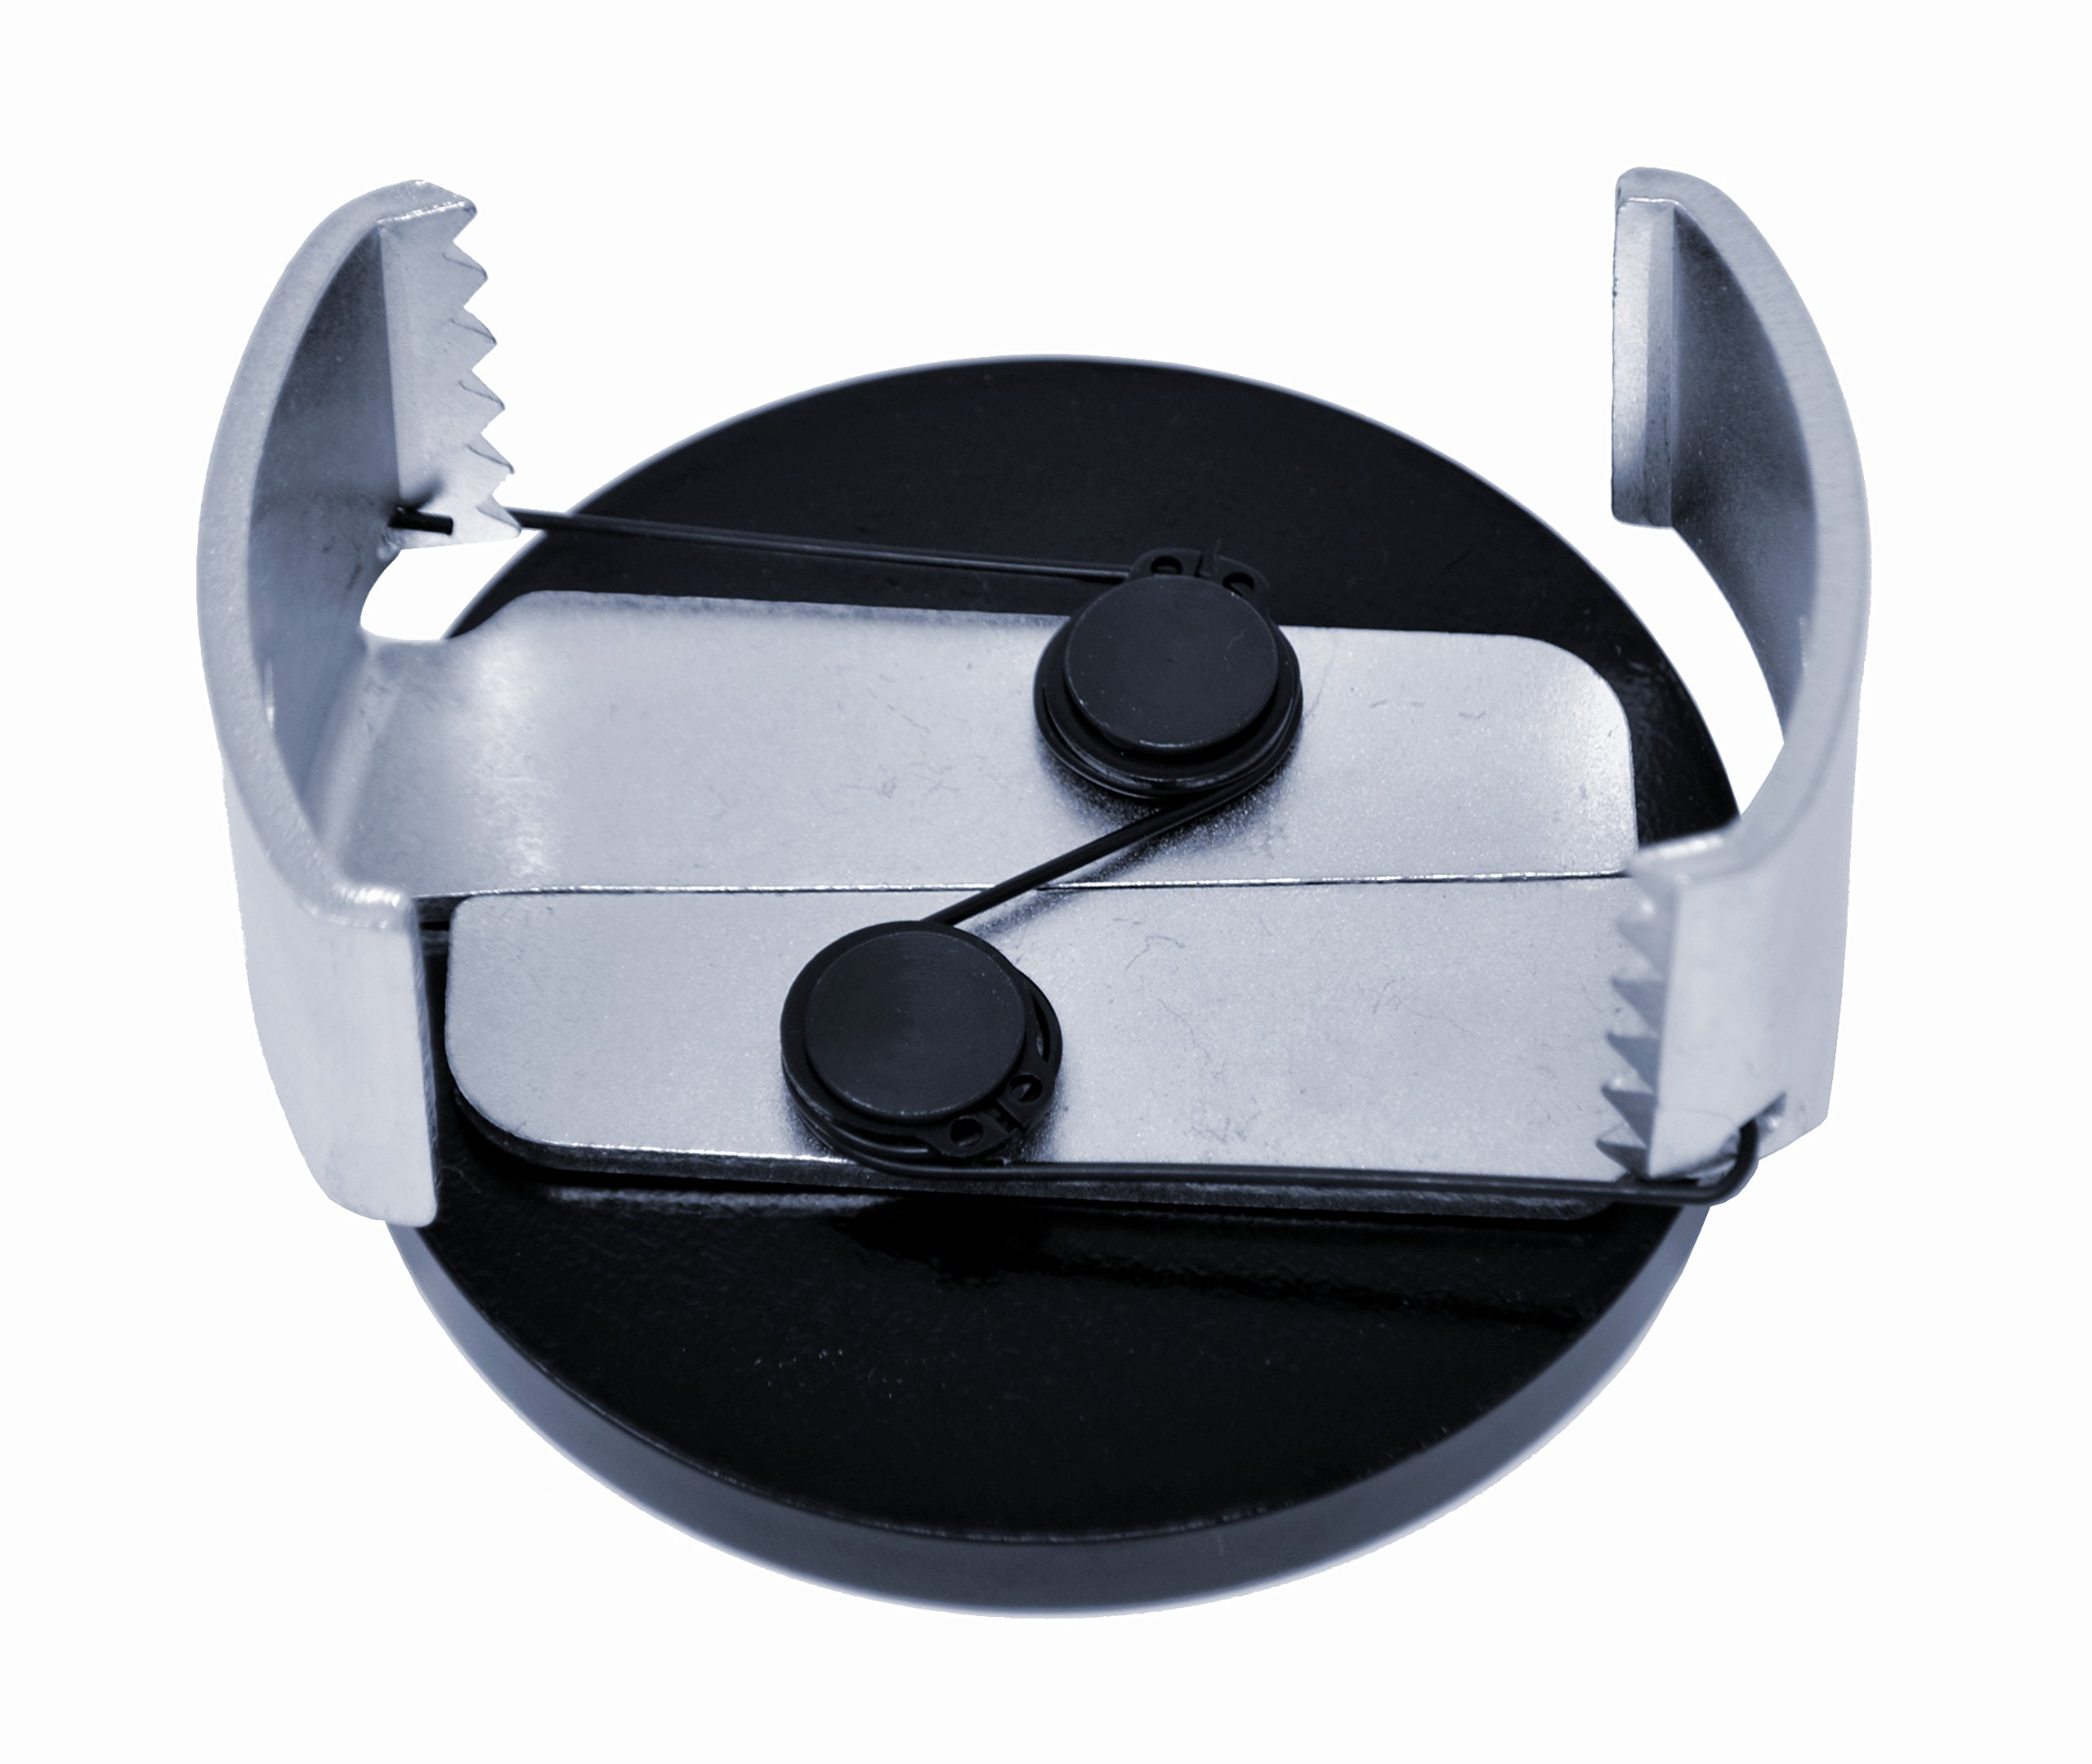 """Motivx Tools Large Adjustable Oil Filter Wrench for Removing 3.15"""" - 4.15"""" Diameter Spin-On Oil Filters"""